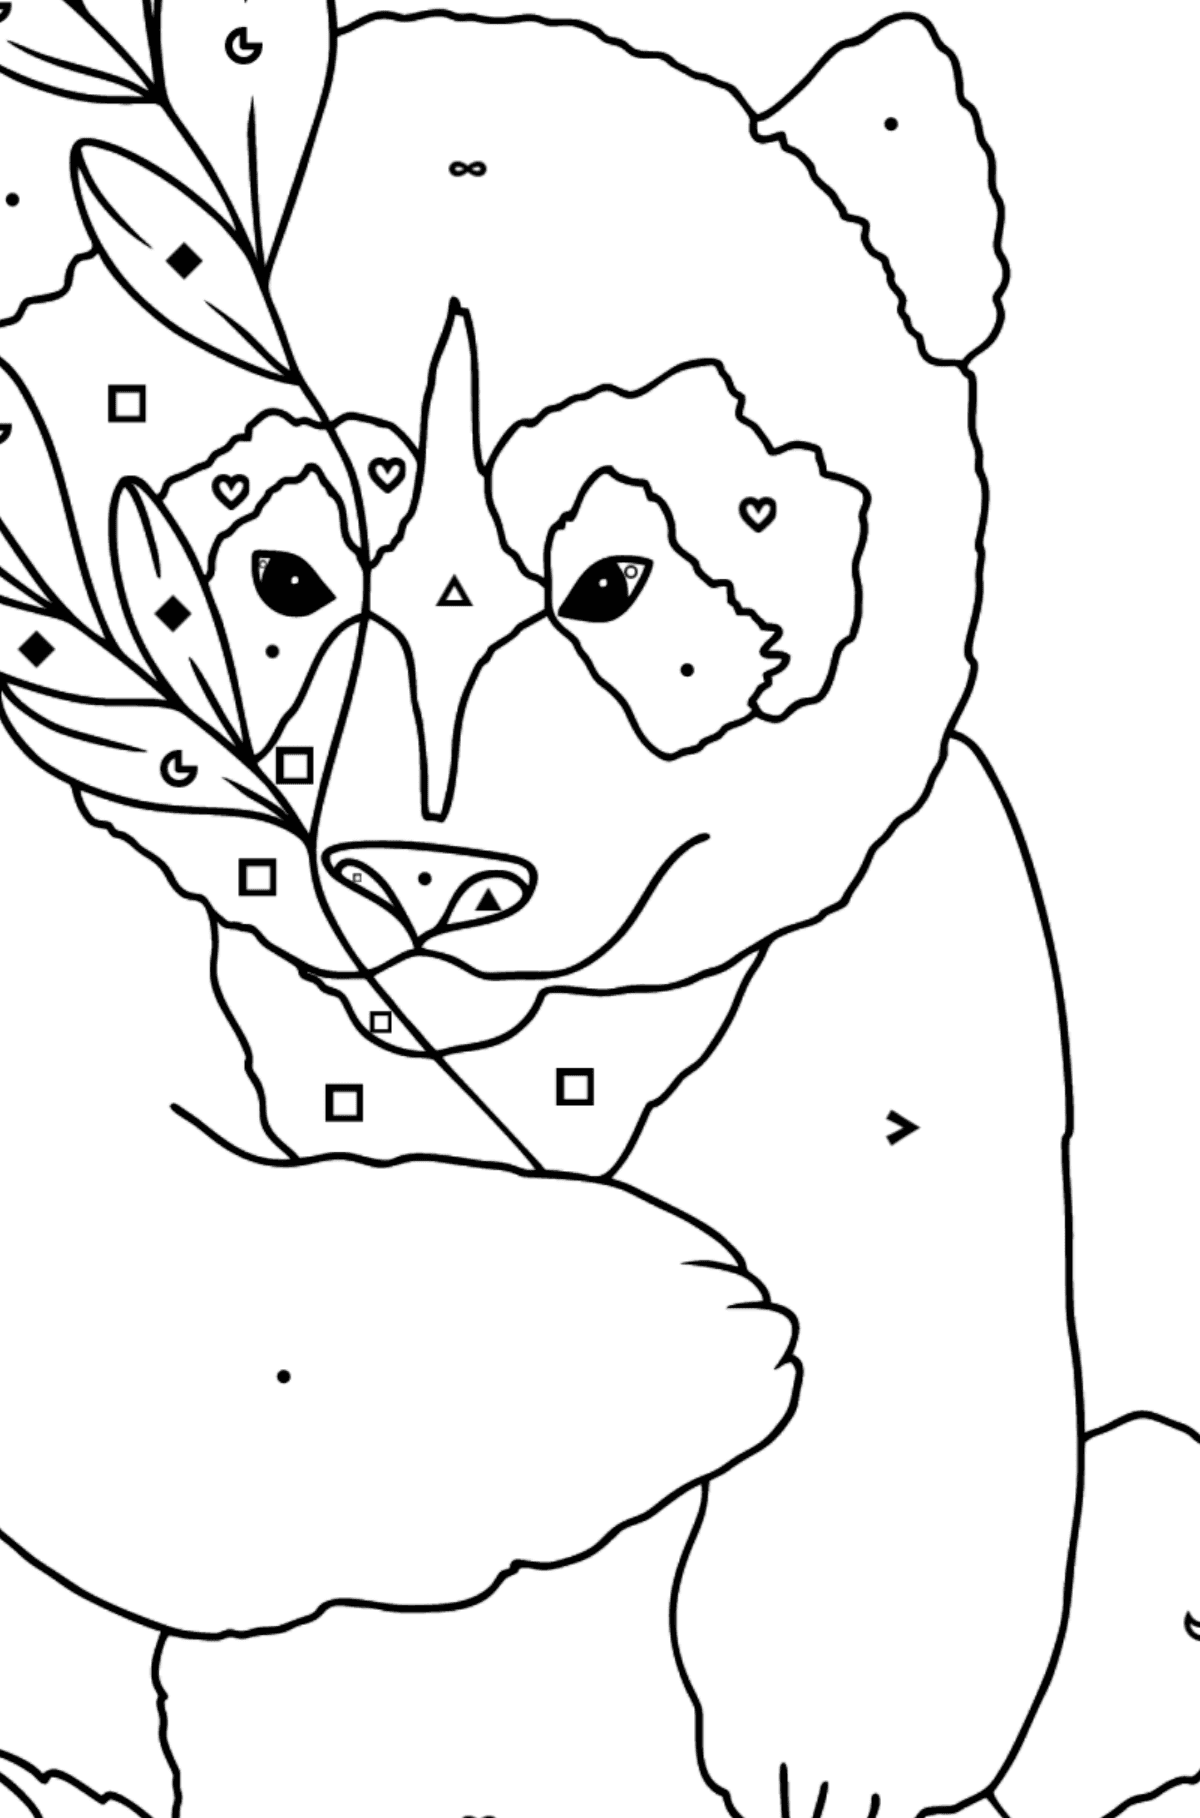 Coloring Page - A Panda is Having a Rest - Coloring by Symbols and Geometric Shapes for Kids